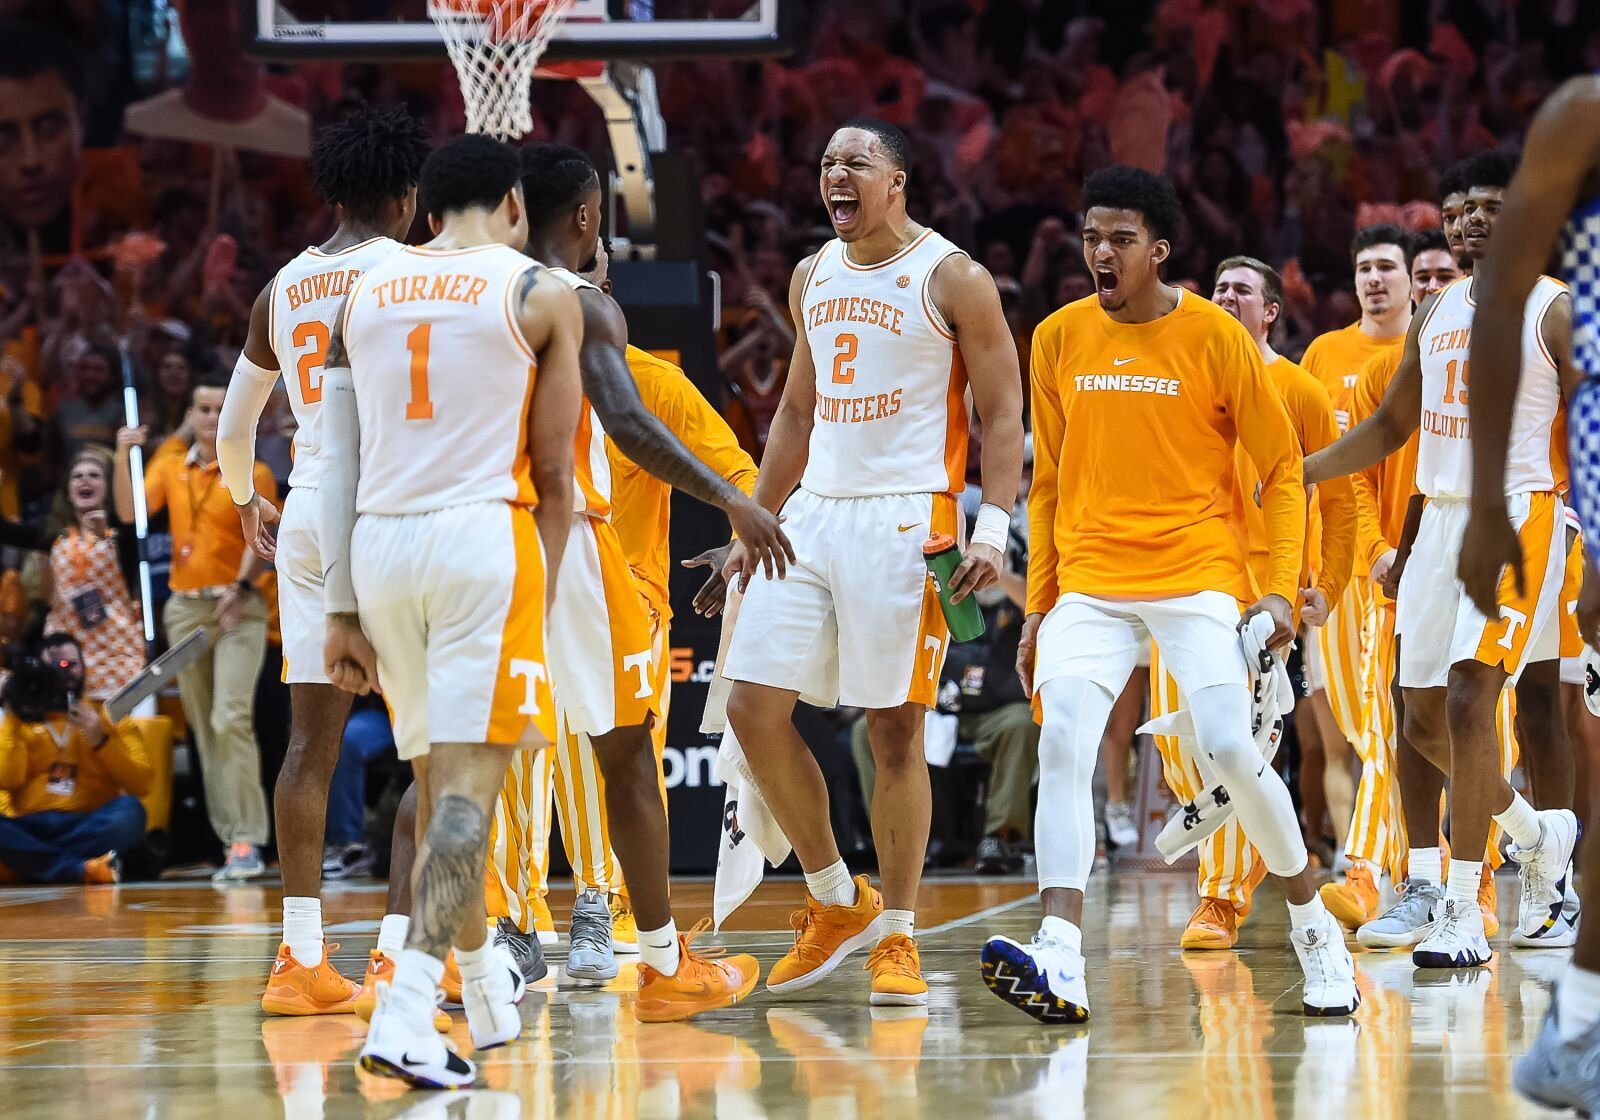 Uk Basketball: Mississippi State Vs. Tennessee Live Stream: Watch SEC